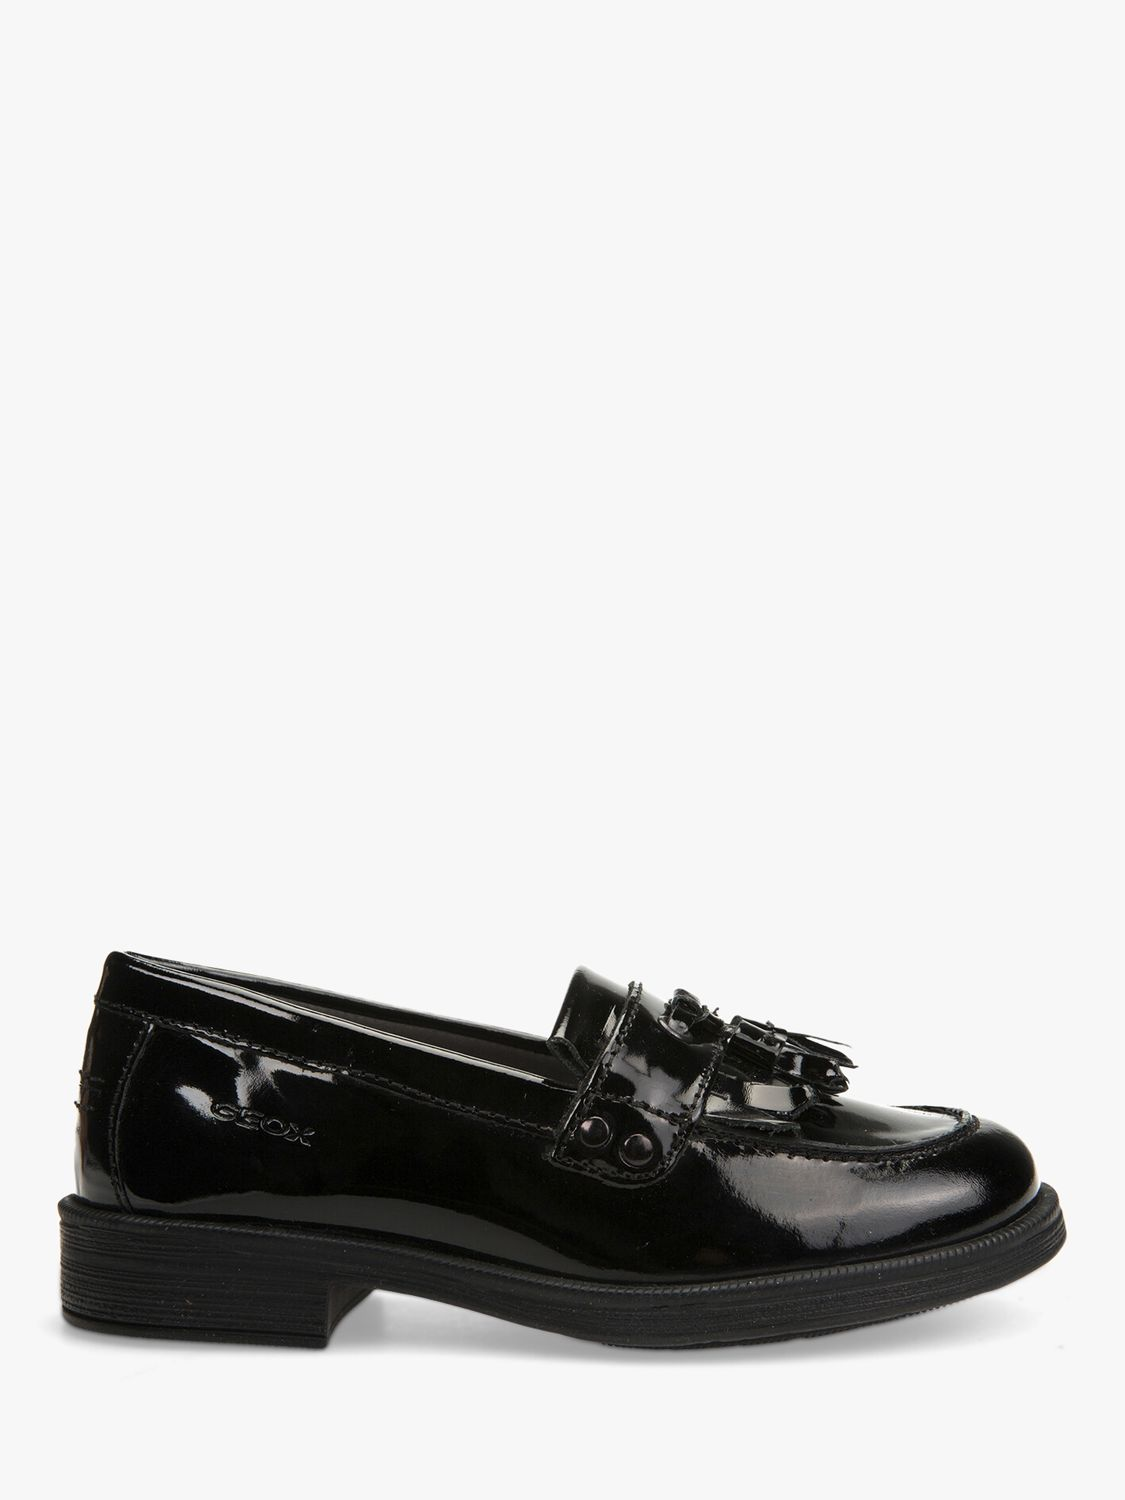 9a46ba11d4 Geox Children's Agata Slip On Leather Loafers, Patent Black at John Lewis &  Partners